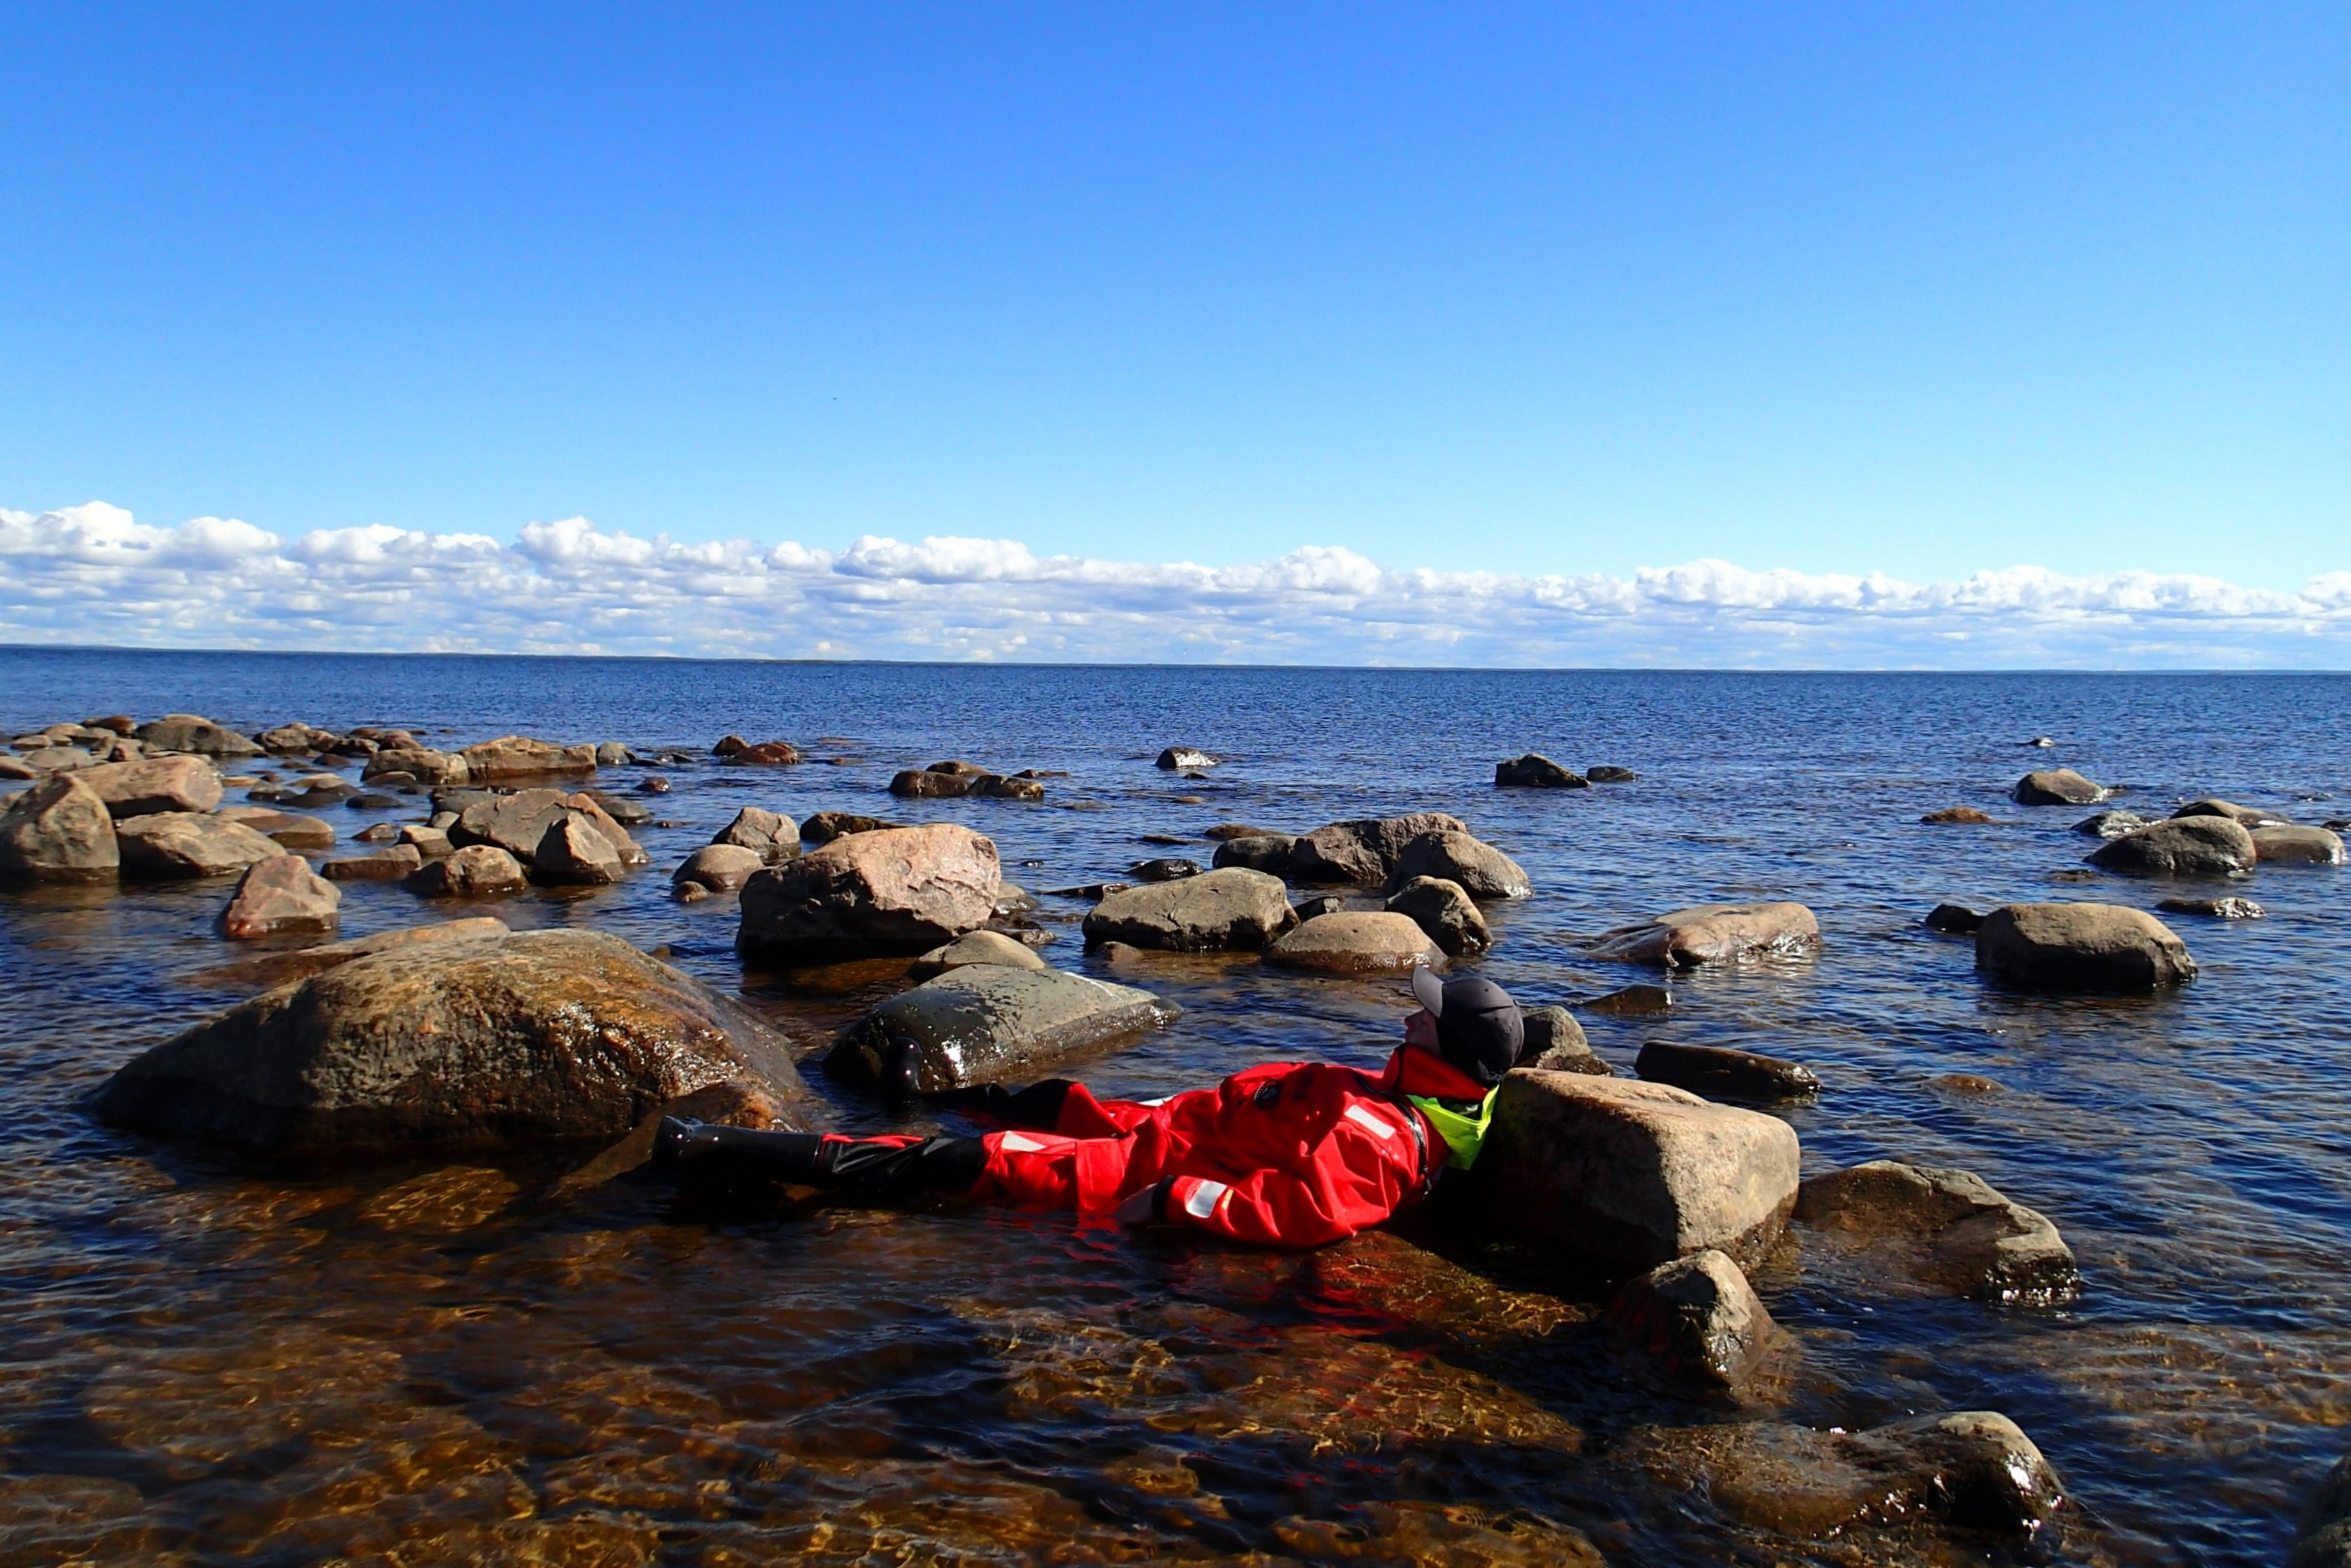 A person laying on a shallow water between big rocks.